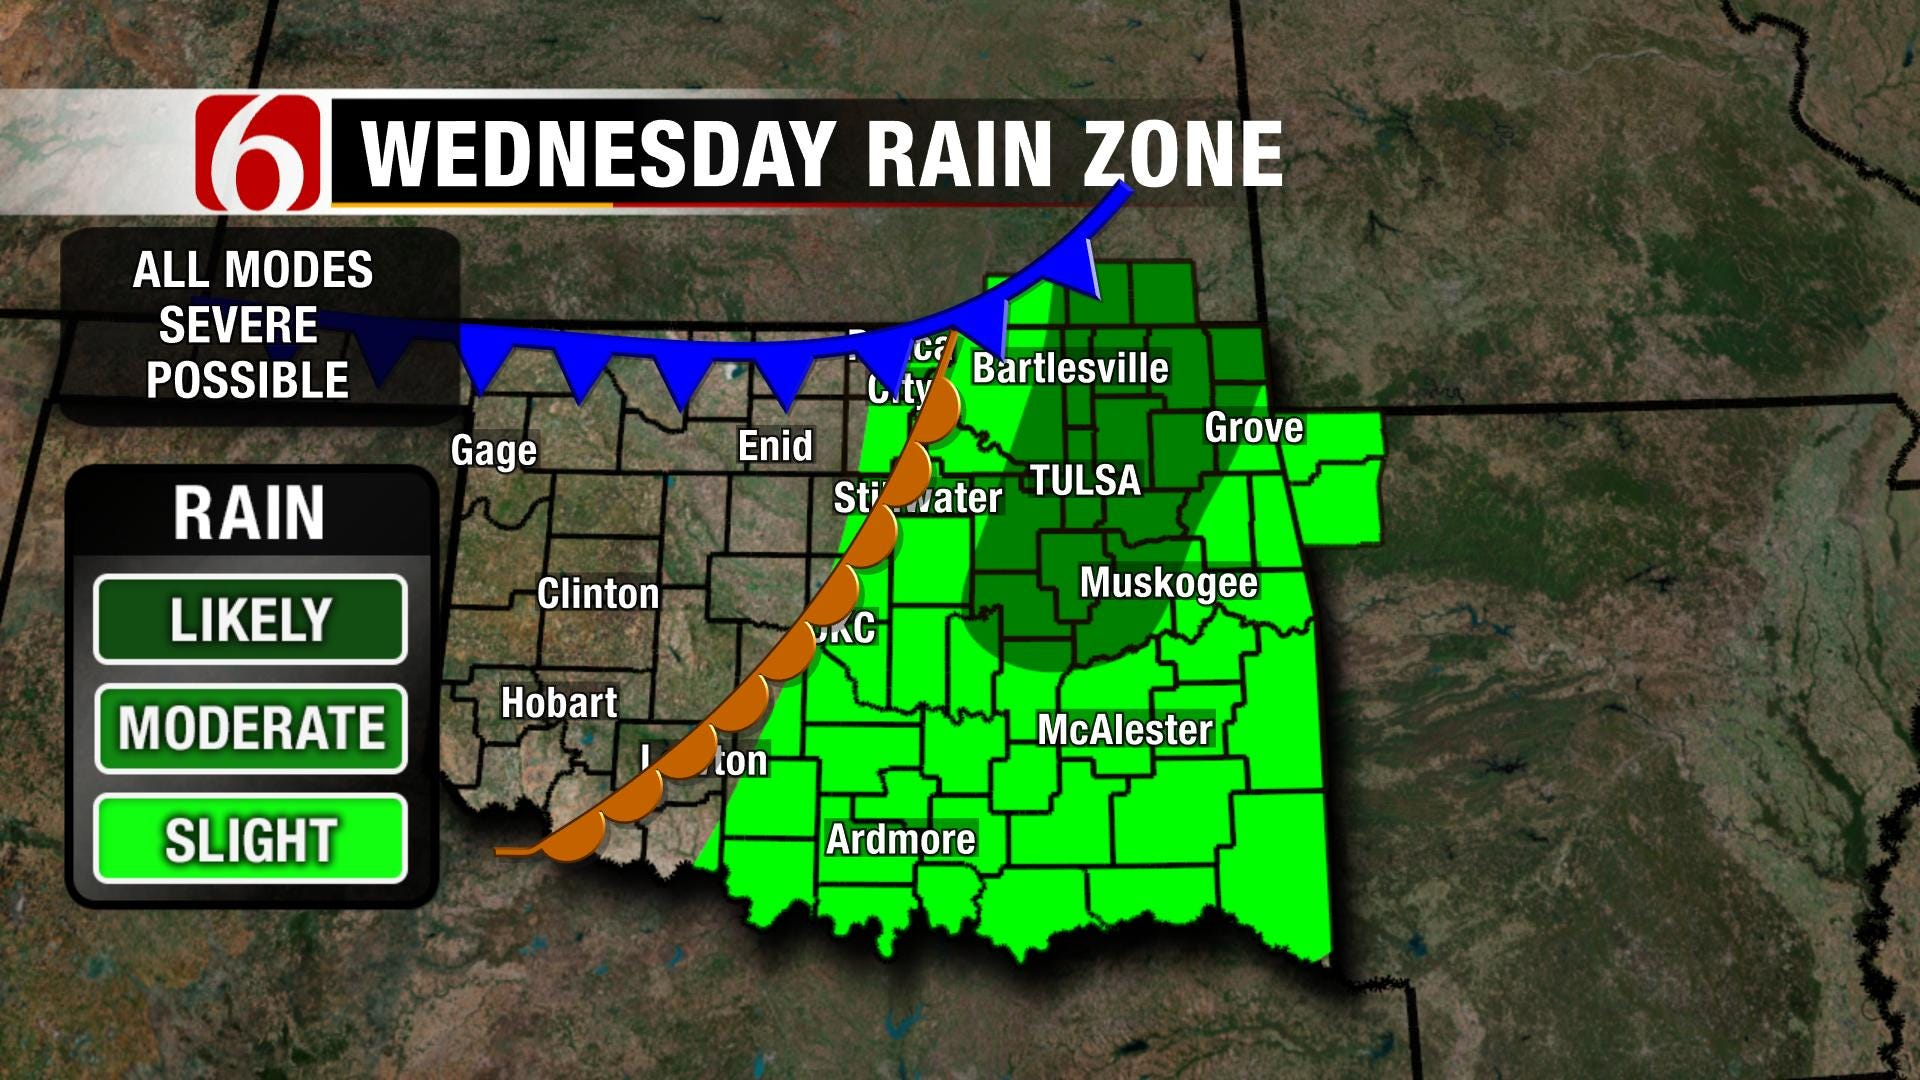 Alan Crone's Weather Blog: Chance Of Thunderstorms North Of Tulsa